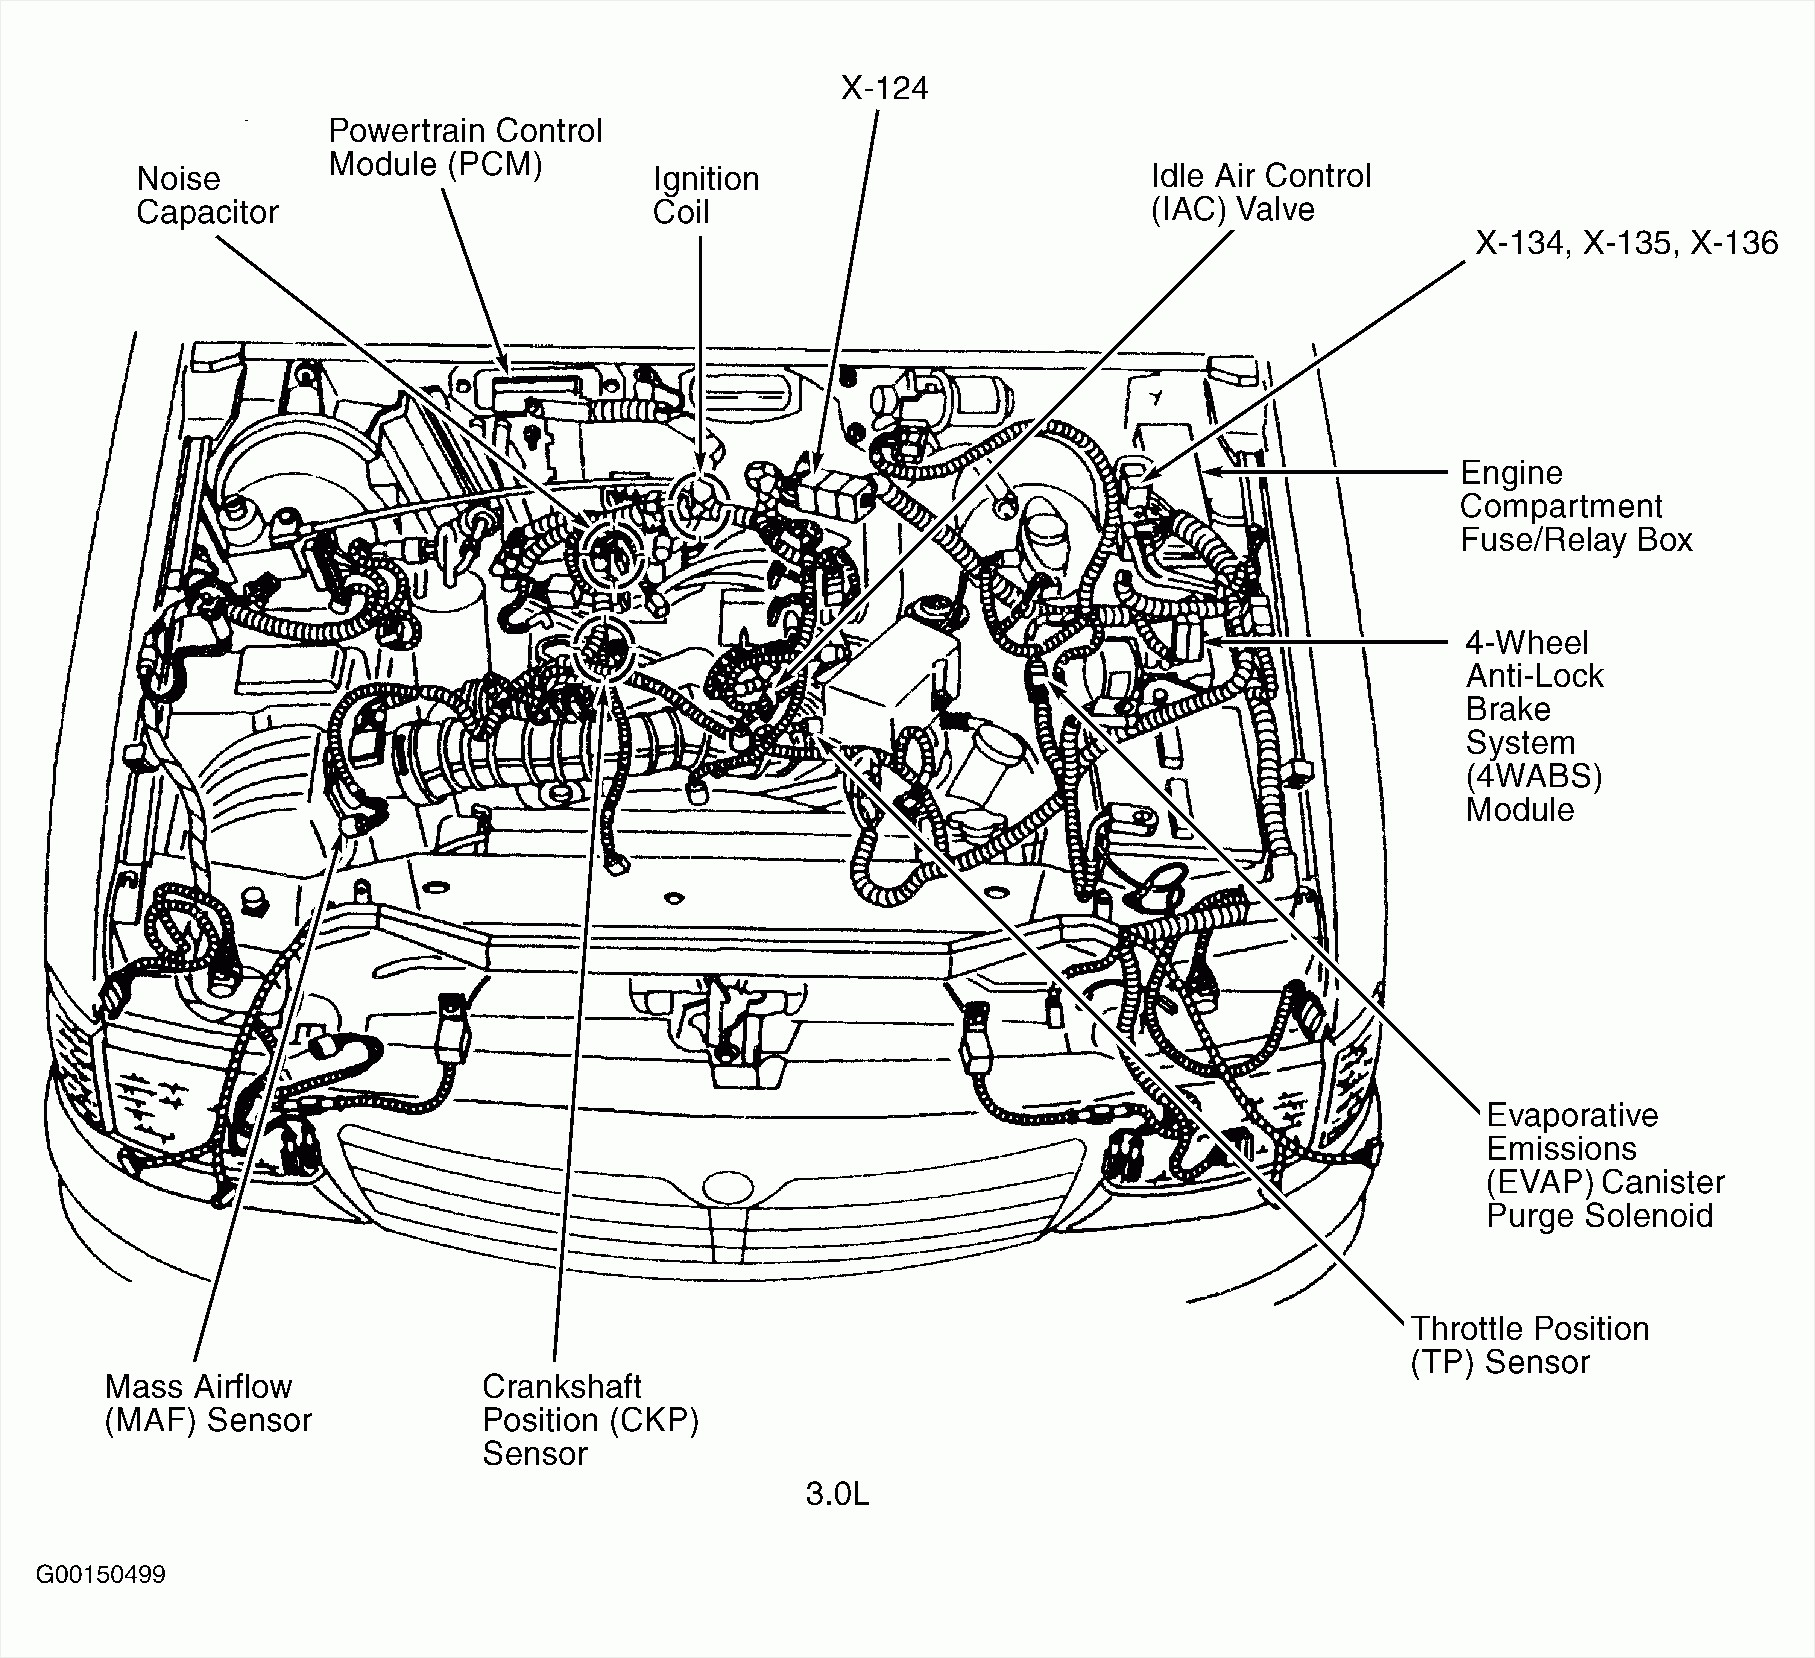 Chevy Malibu Engine Fuse Box Diagram